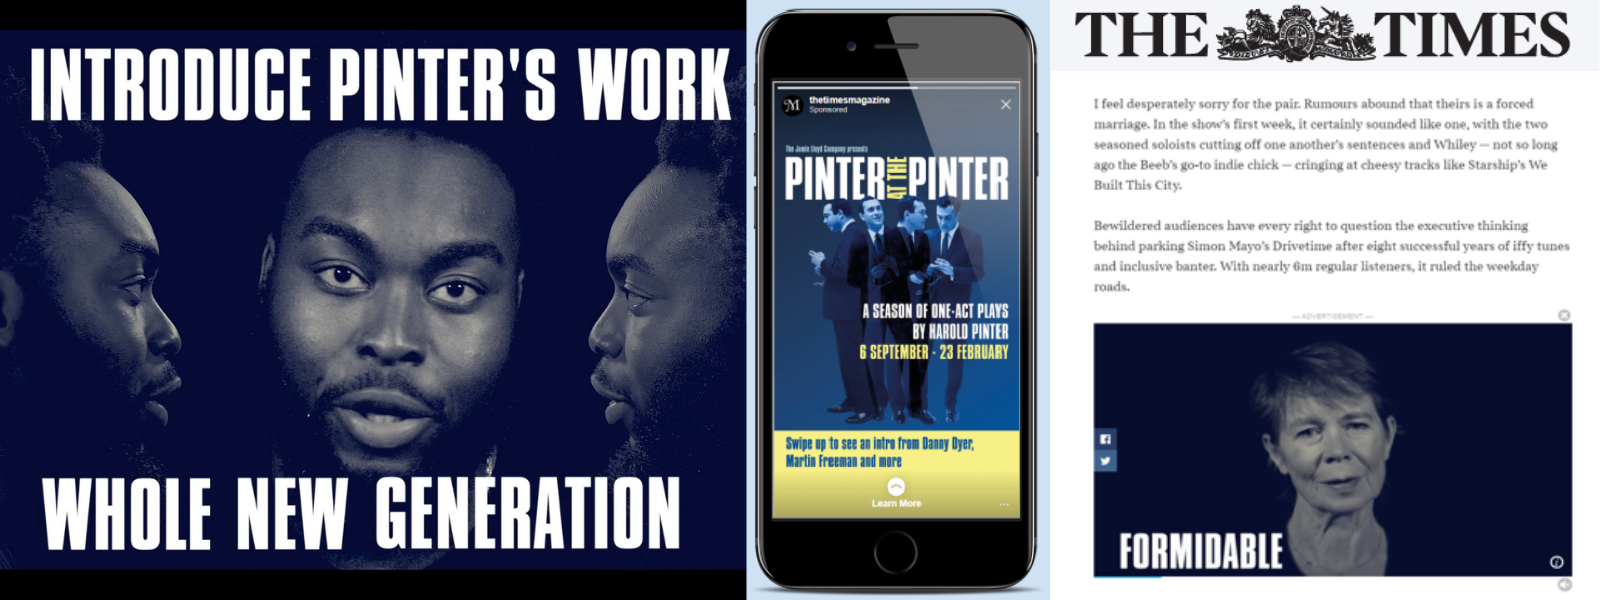 Pinter at the Pinter x The Times: Sponsored Instagram Story